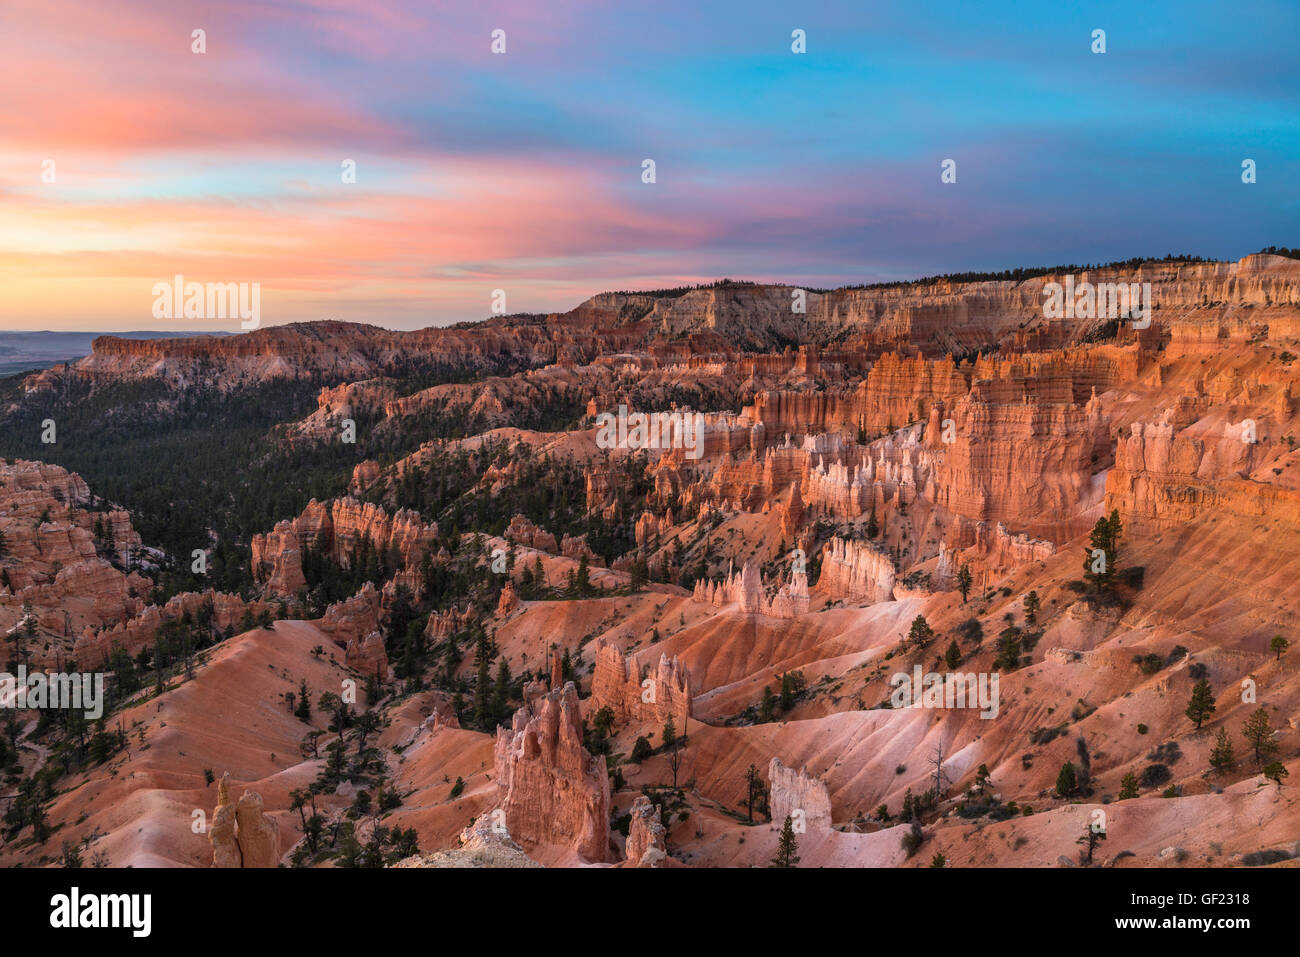 Amphitheater, Bryce Canyon National Park, Utah, USA Stock Photo